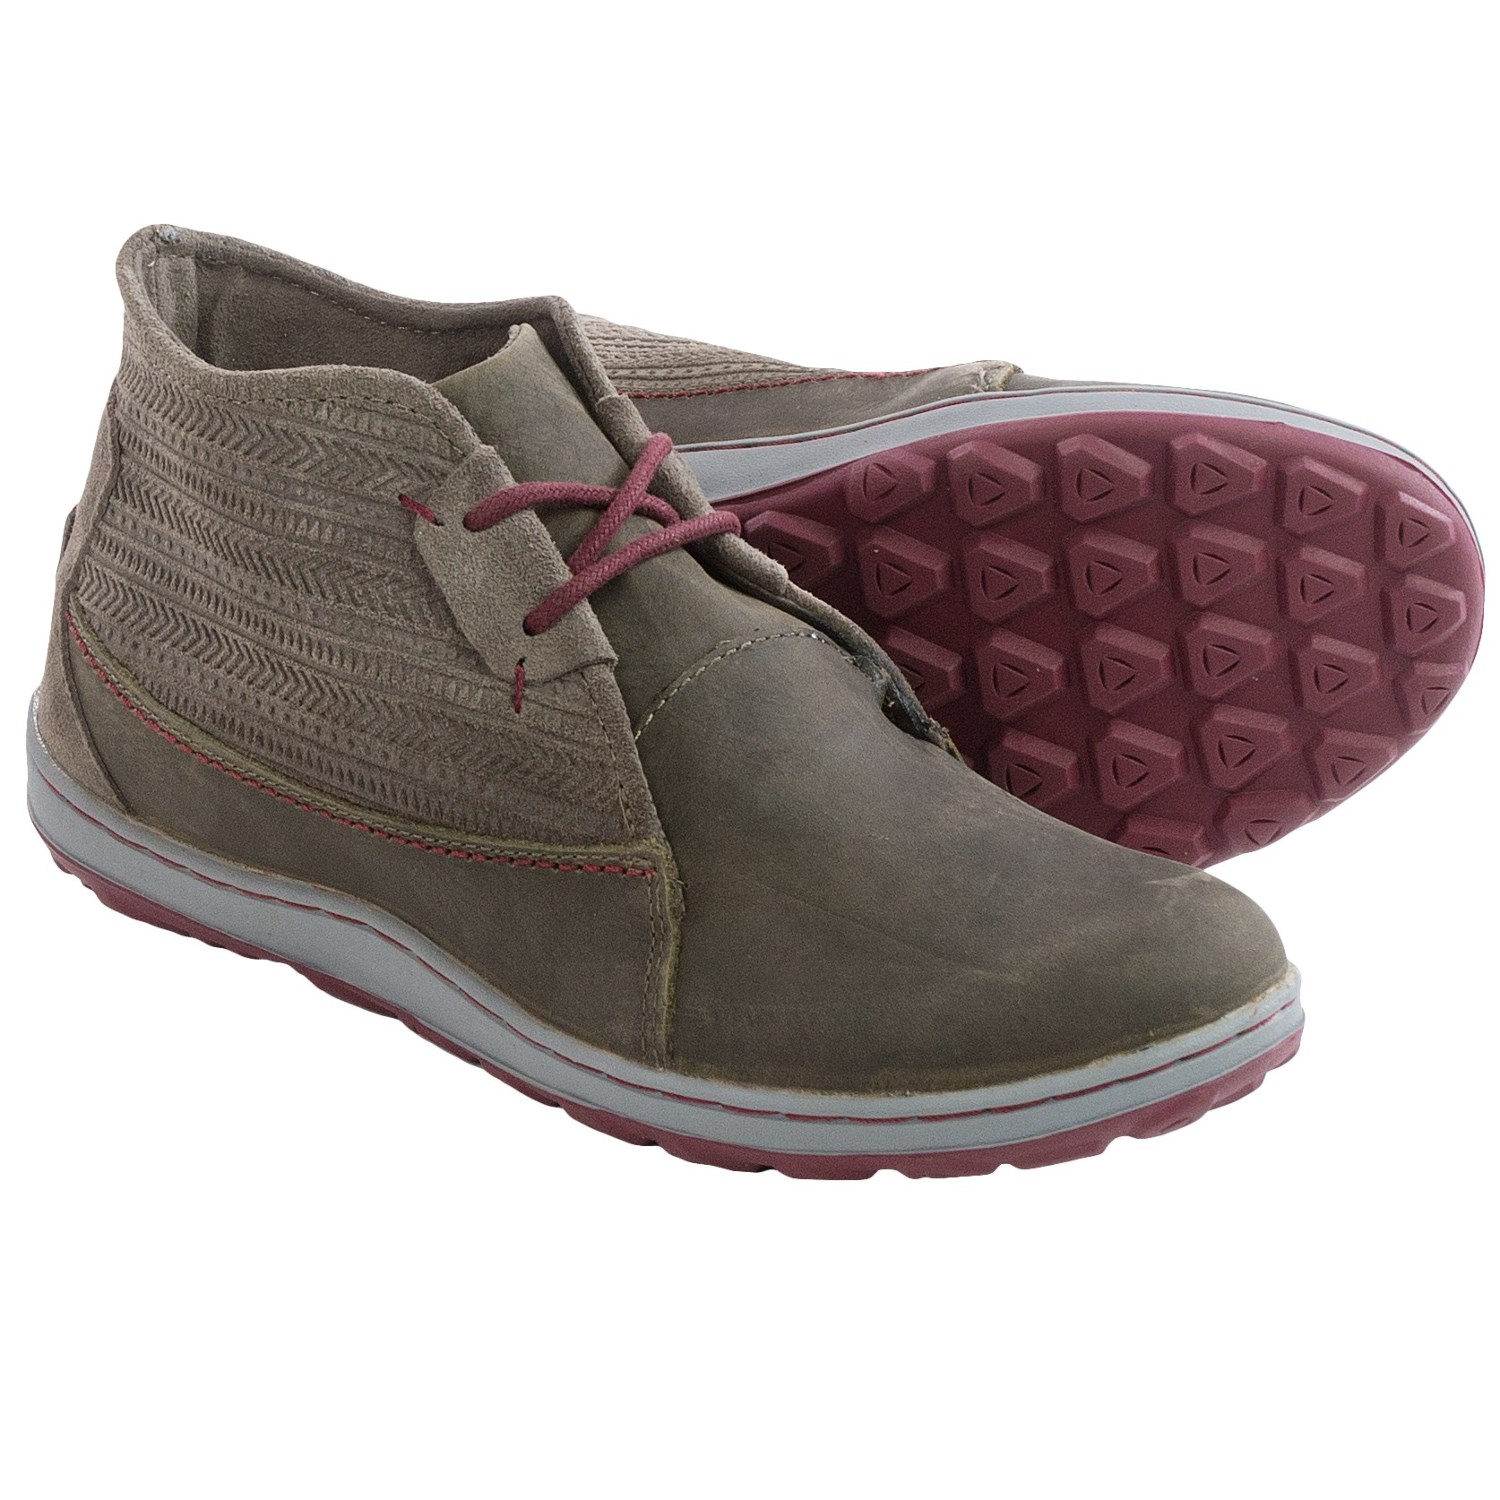 Model Roper  Women39s Gum Sole Chukka Boots